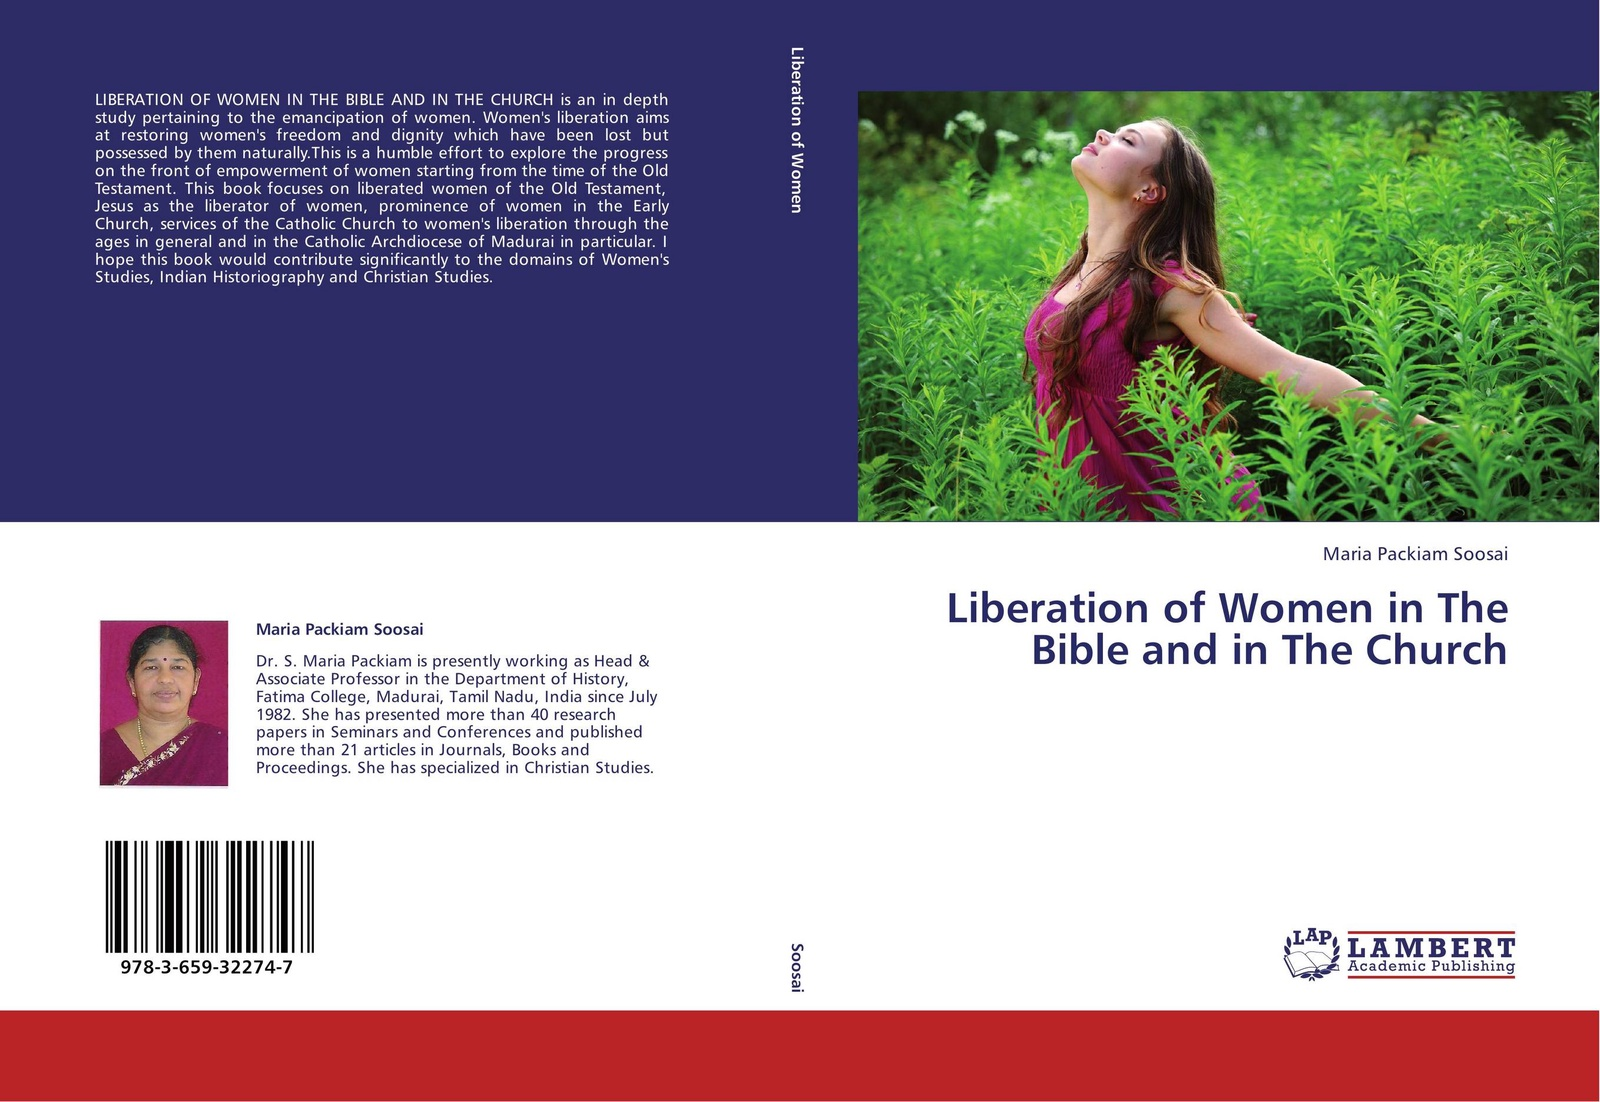 Maria Packiam Soosai Liberation of Women in The Bible and Church